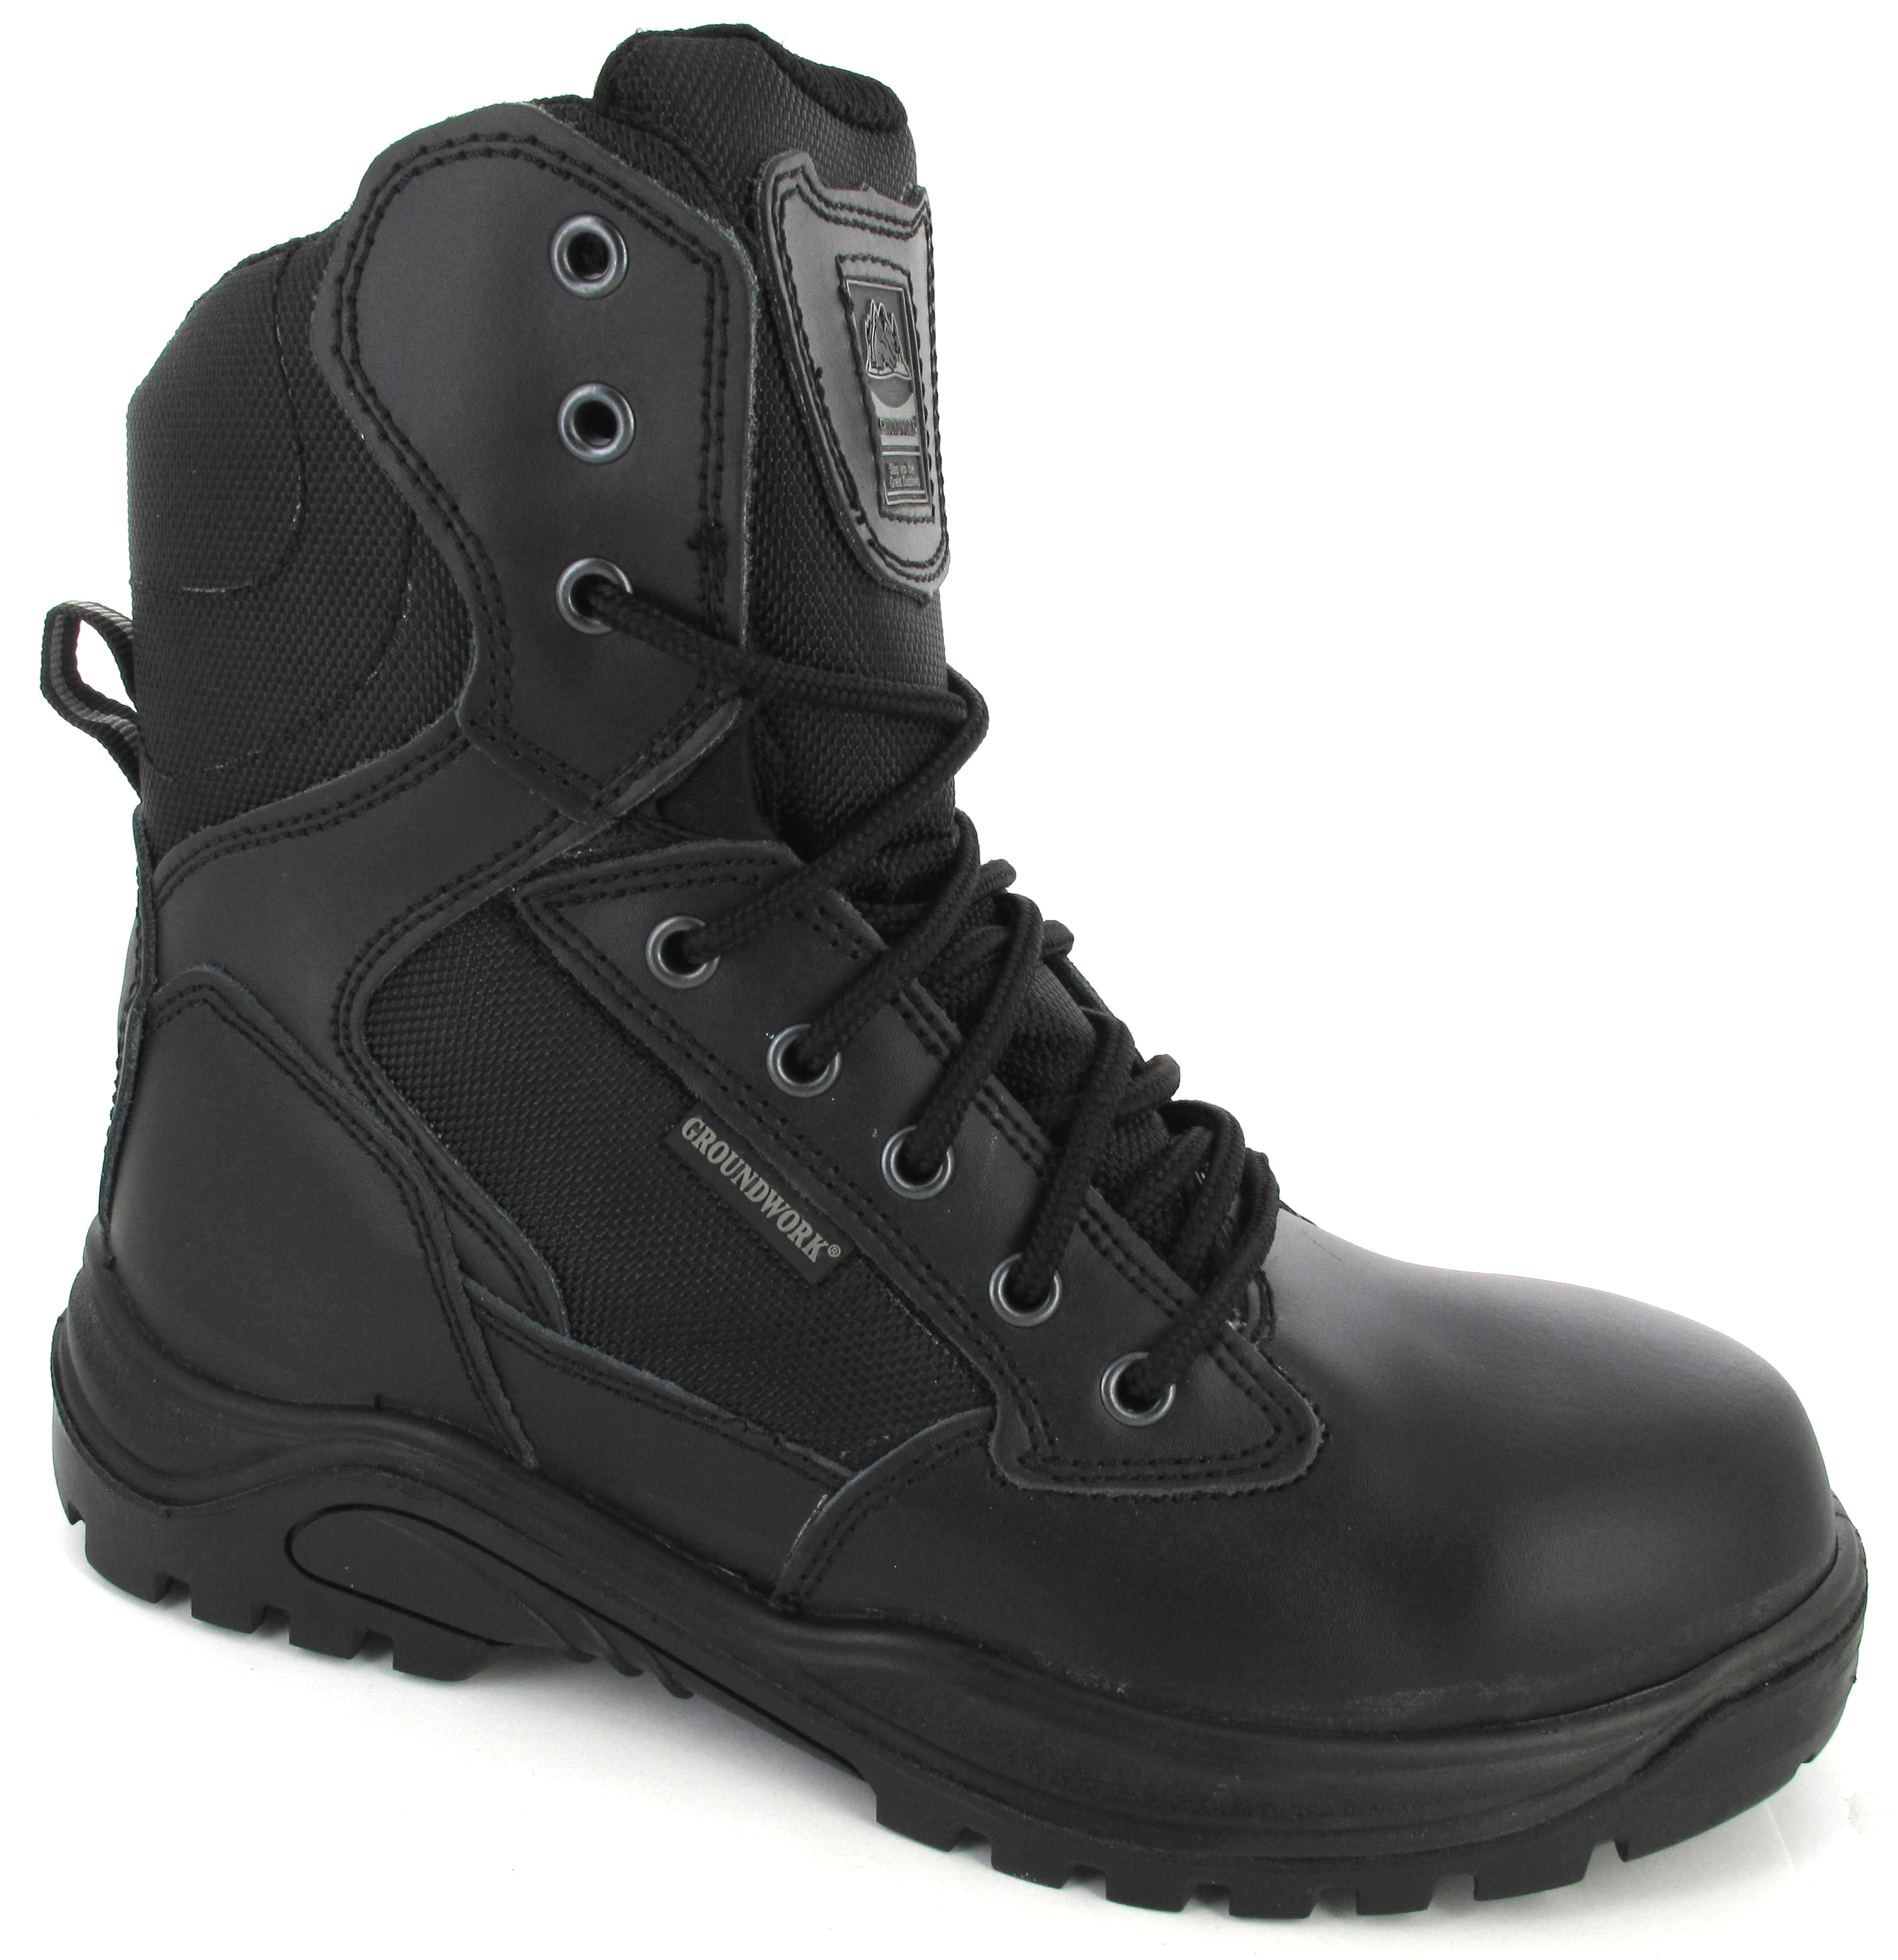 Black Combat Boots with FREE Shipping & Exchanges, and a % price guarantee. Choose from a huge selection of Black Combat Boots styles.